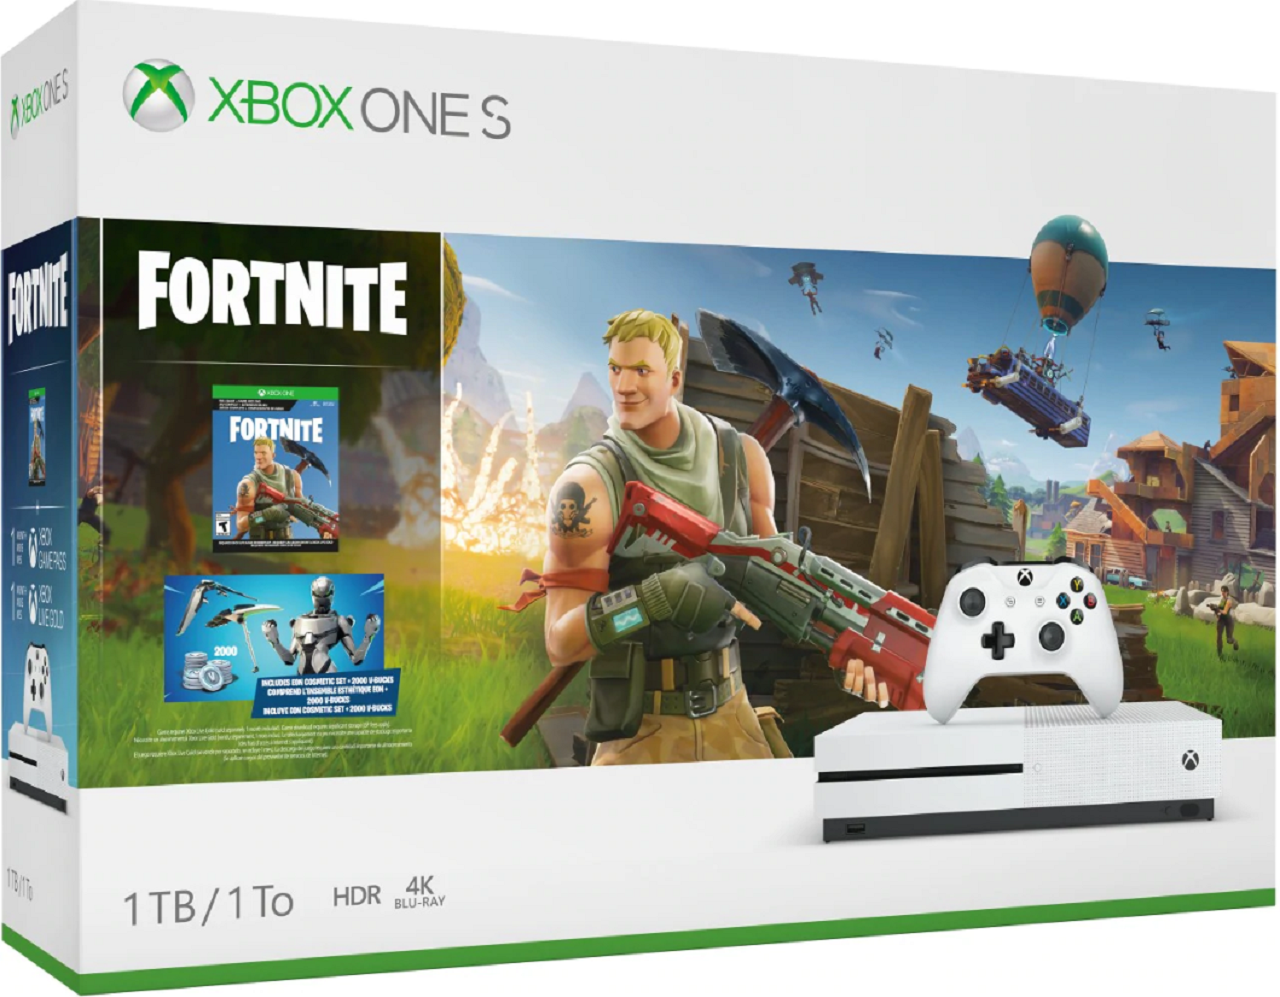 Black Friday Deal Xbox One S 1tb Fortnite Bundle With Red Dead Redemption 2 For 140 Vg247